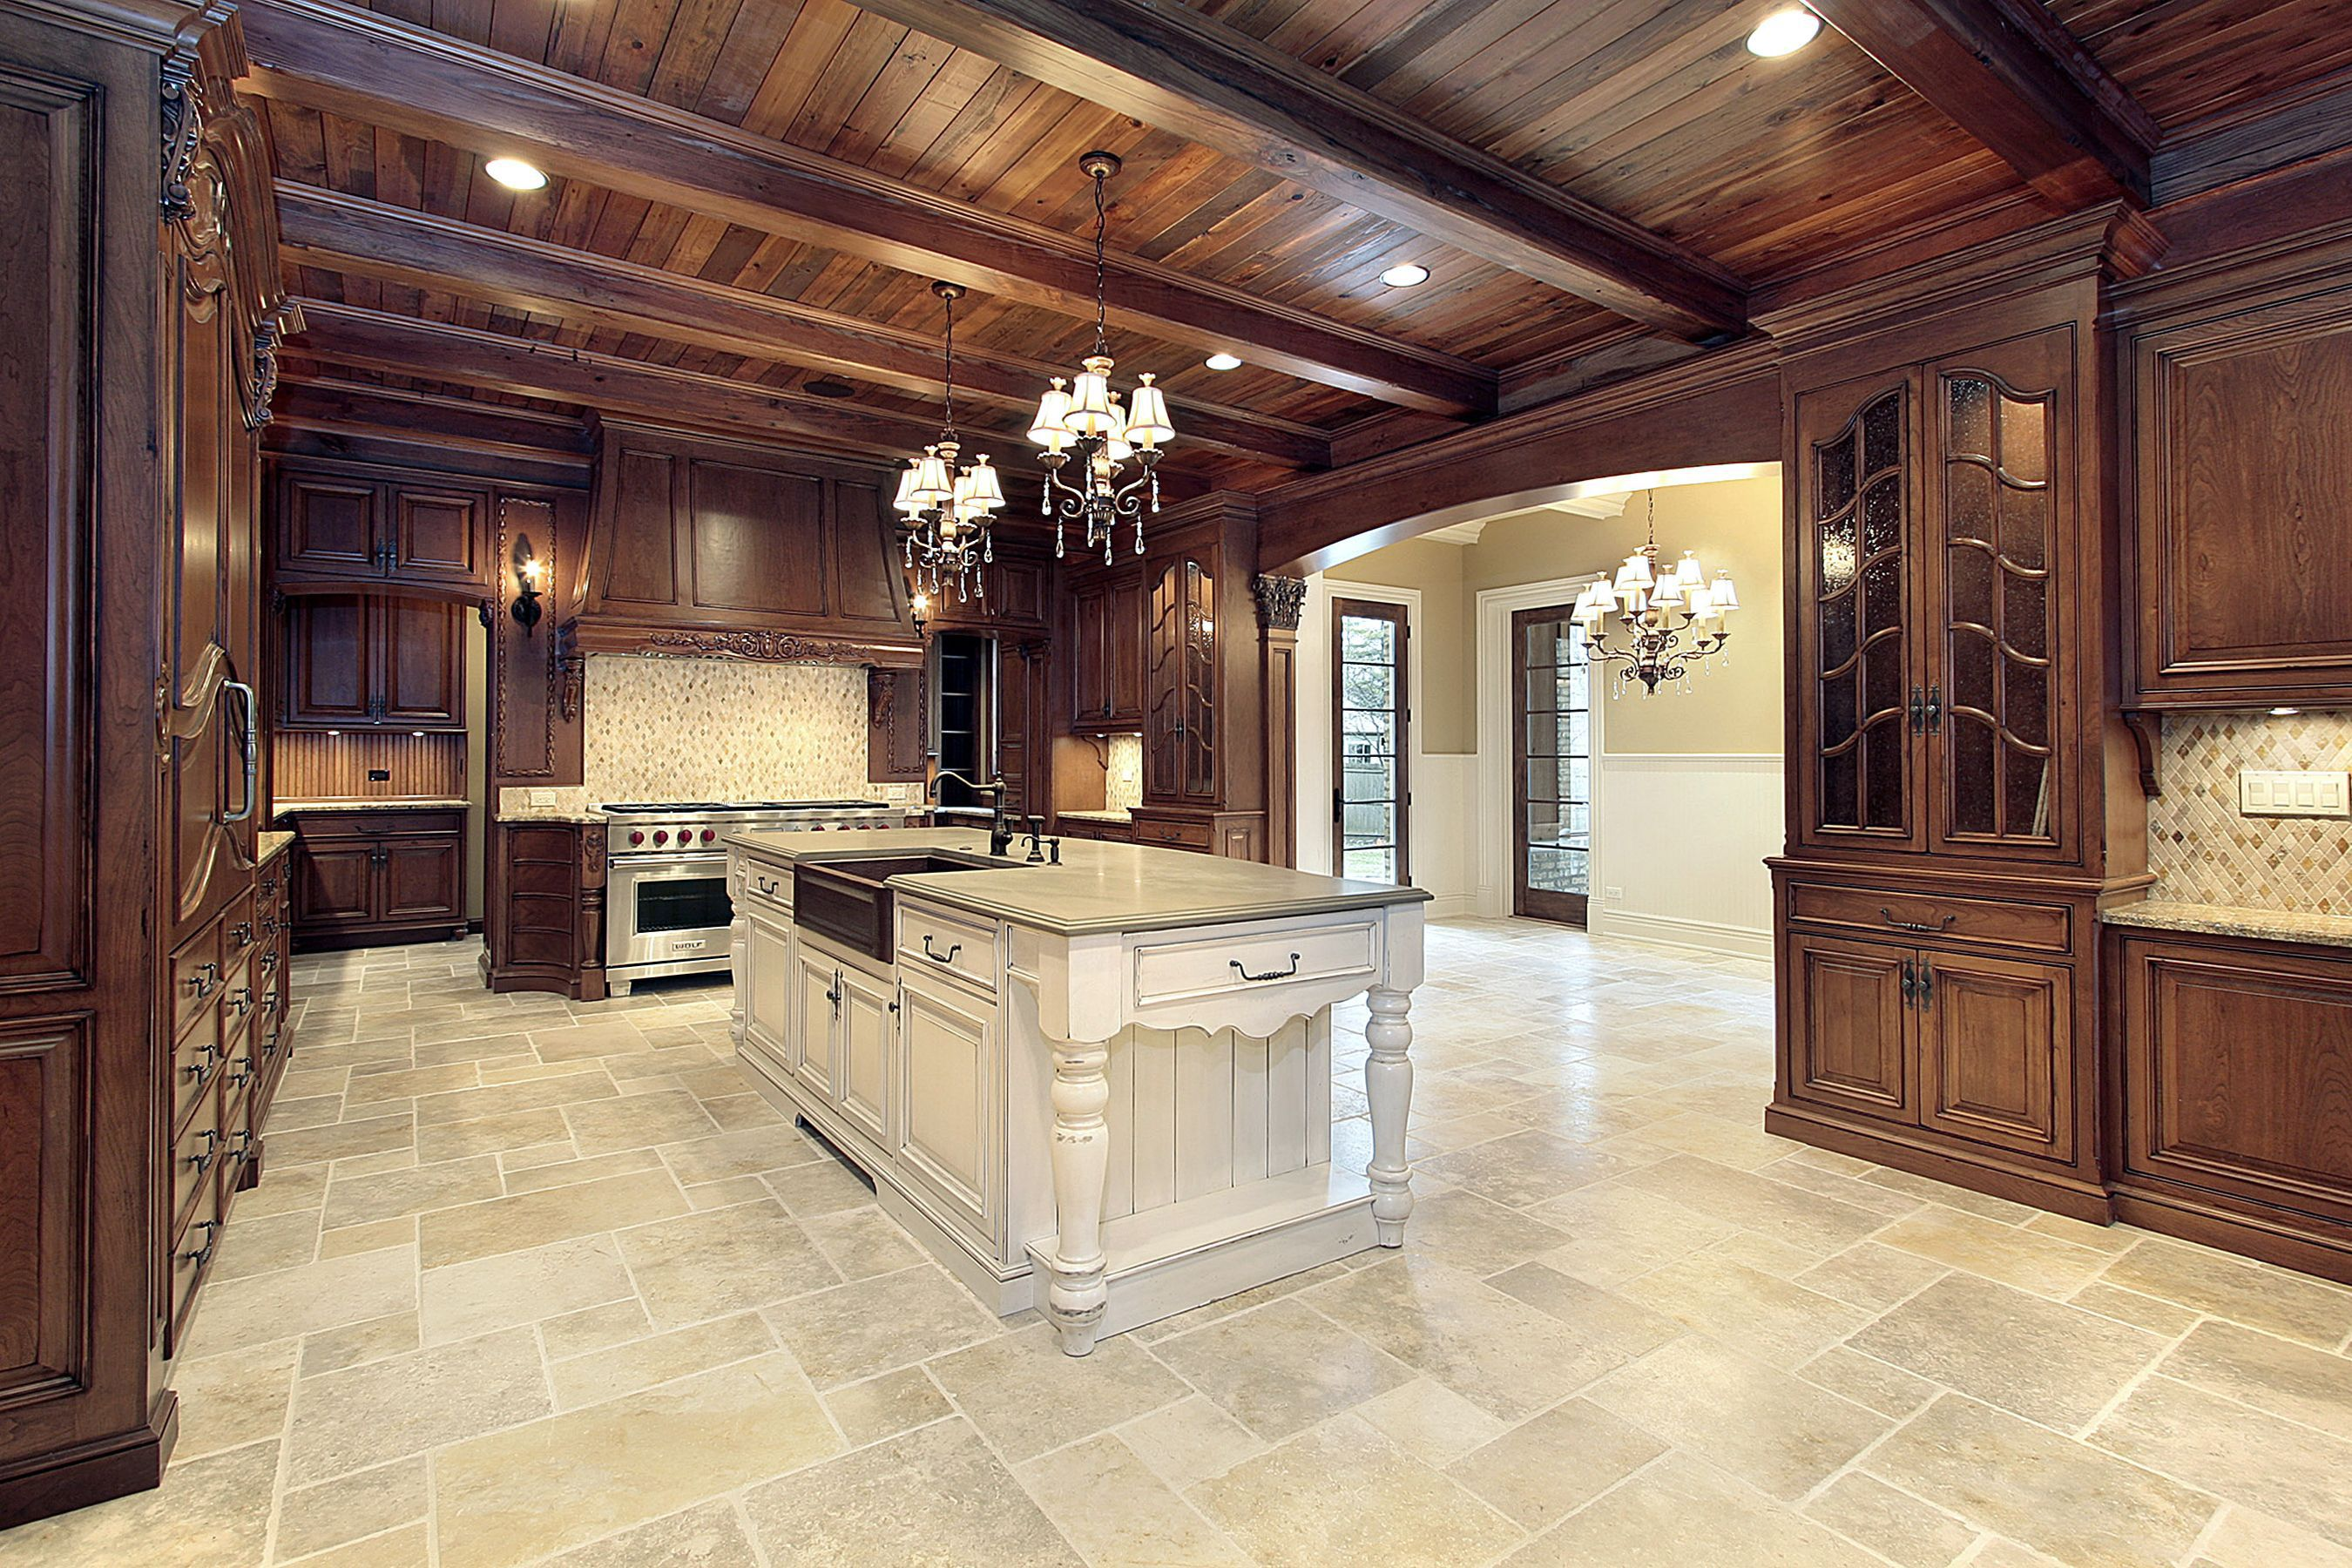 Awesome Interior Room Using Impressive Kitchen Tile Floor also Chandeliers